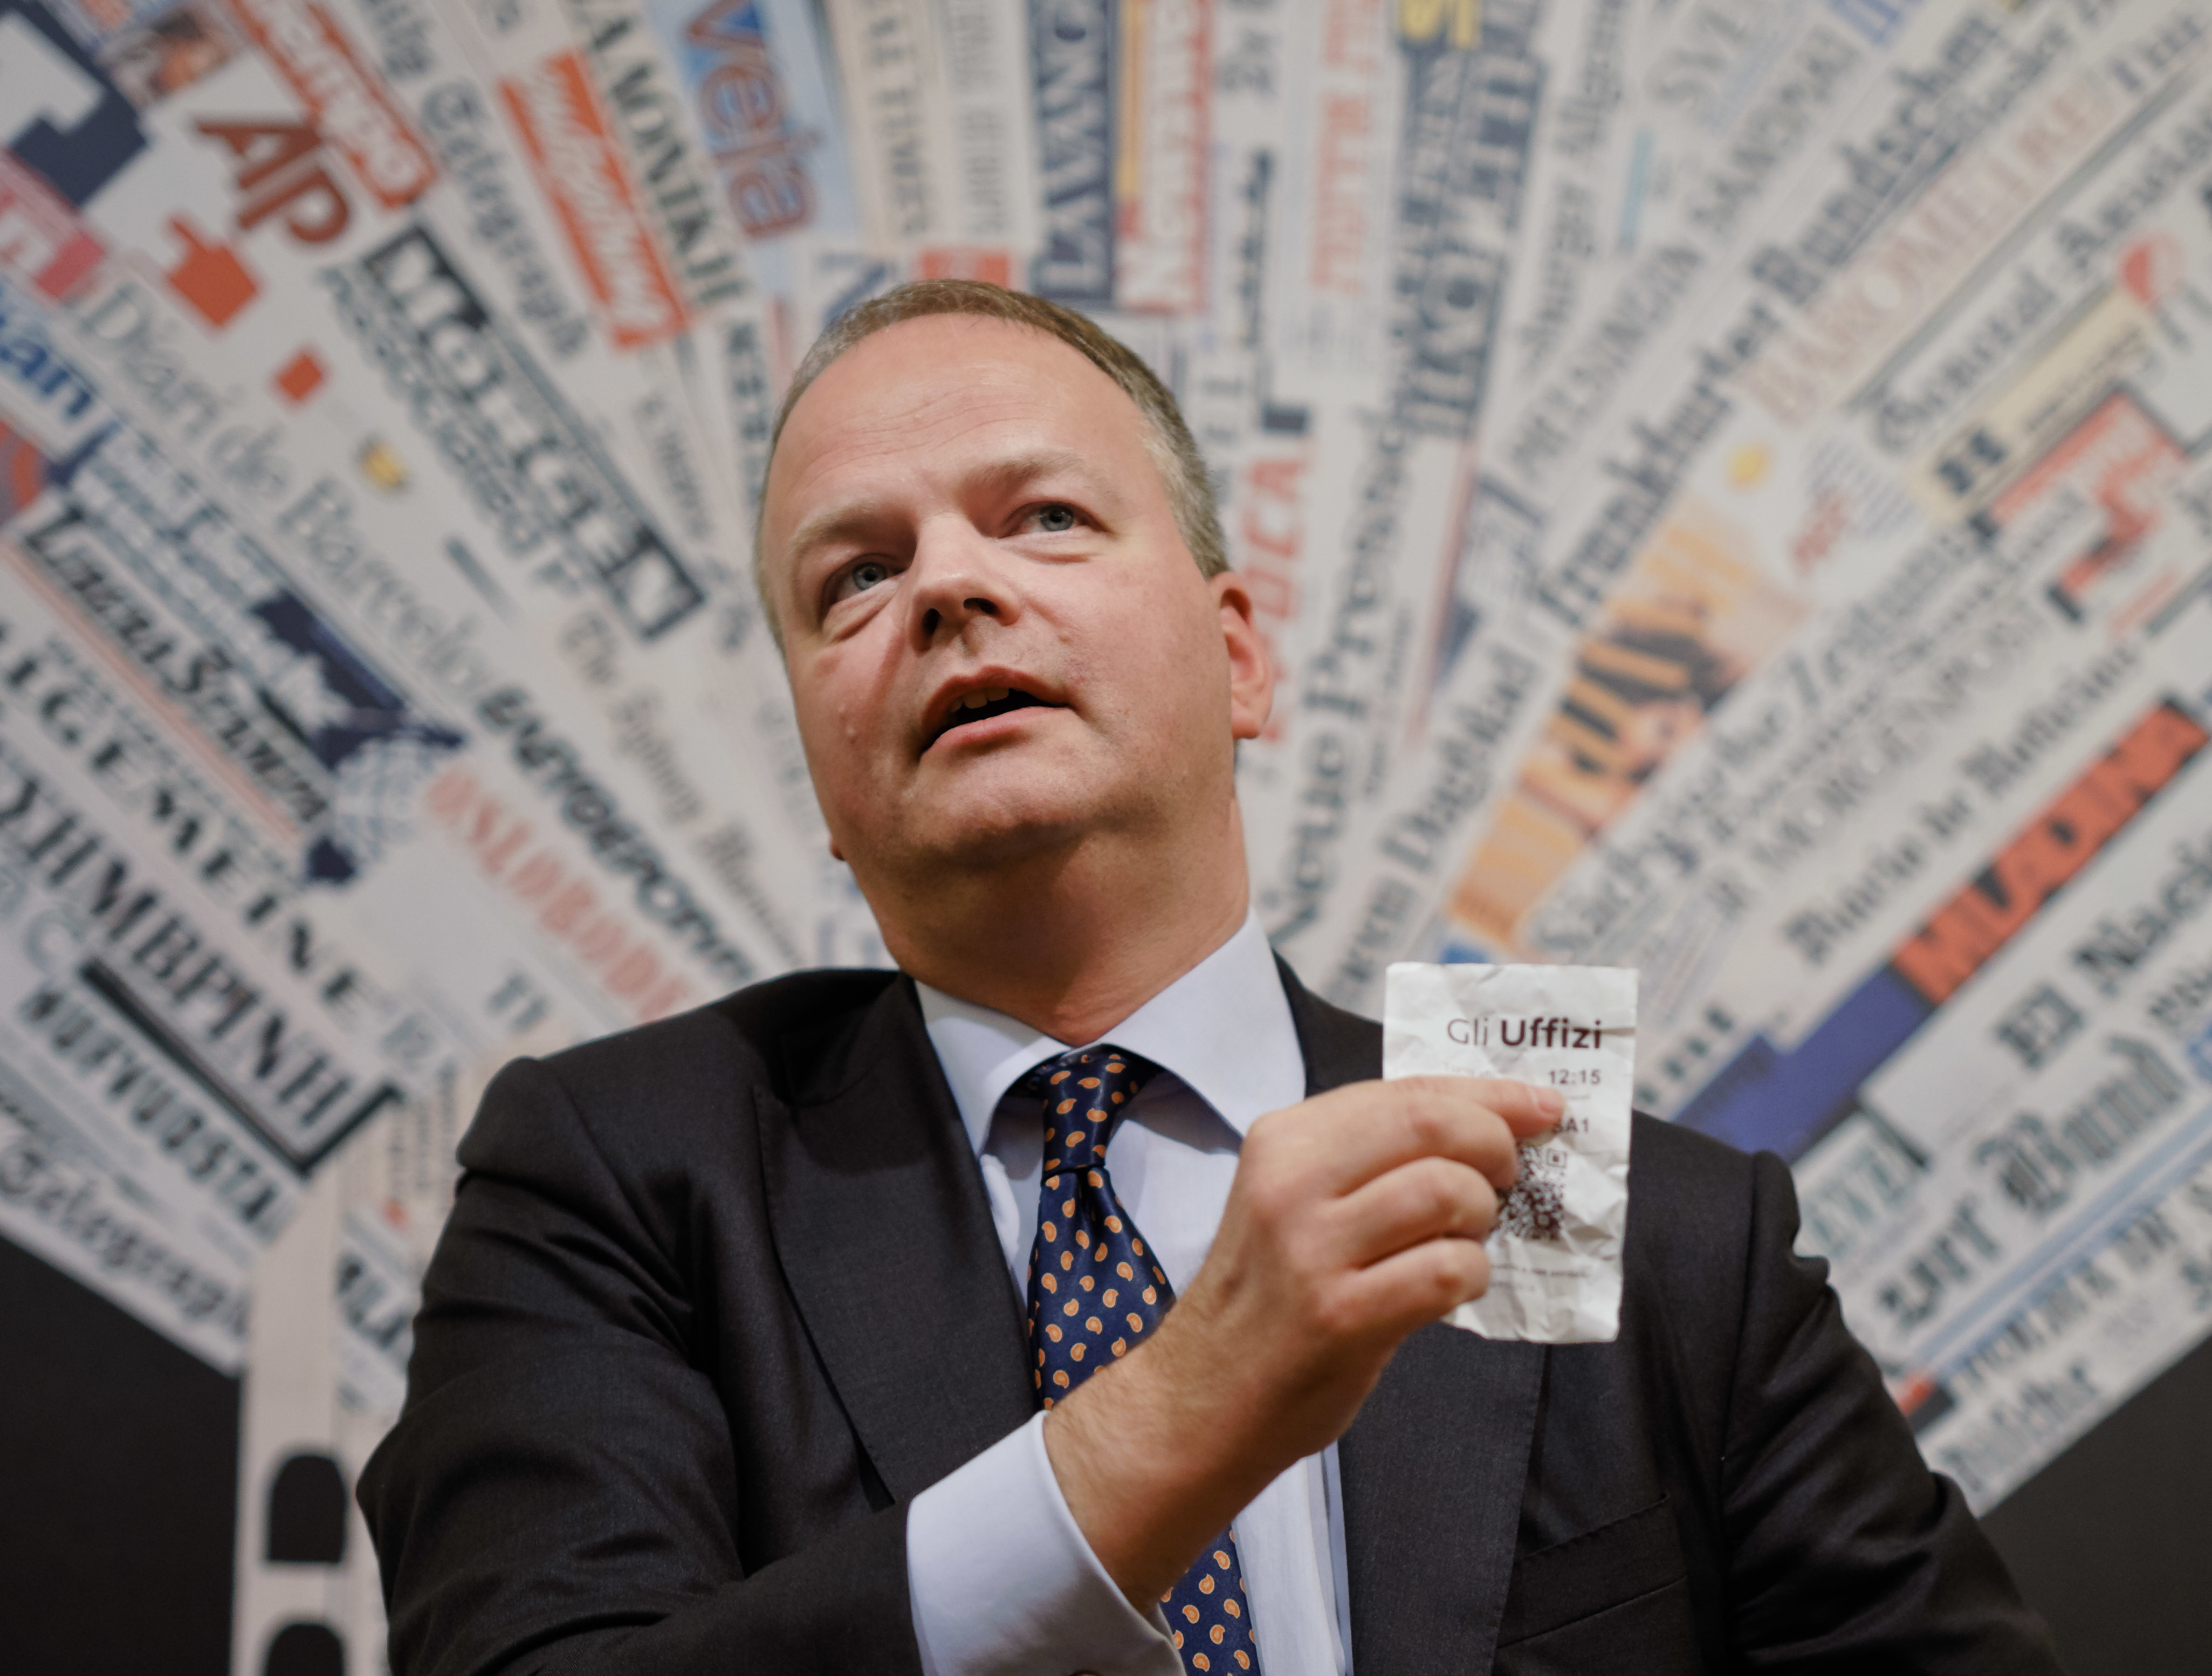 German art historian and director of the Uffizi galleries, Eike Schmidt, shows a ticket for the Uffizi Museum during a press conference at the Foreign Press Club in Rome, Wednesday, Dec. 5, 2018. The Uffizi Galleries in Florence aims to discourage visitor overcrowding and ticket scalpers. Schmidt says Italy's most-visited art museum is meeting with Italian privacy guarantors to devise ways to use purchasers' photos to thwart scalpers looking to resell tickets at exorbitant prices. (AP Photo/Domenico Stinellis)